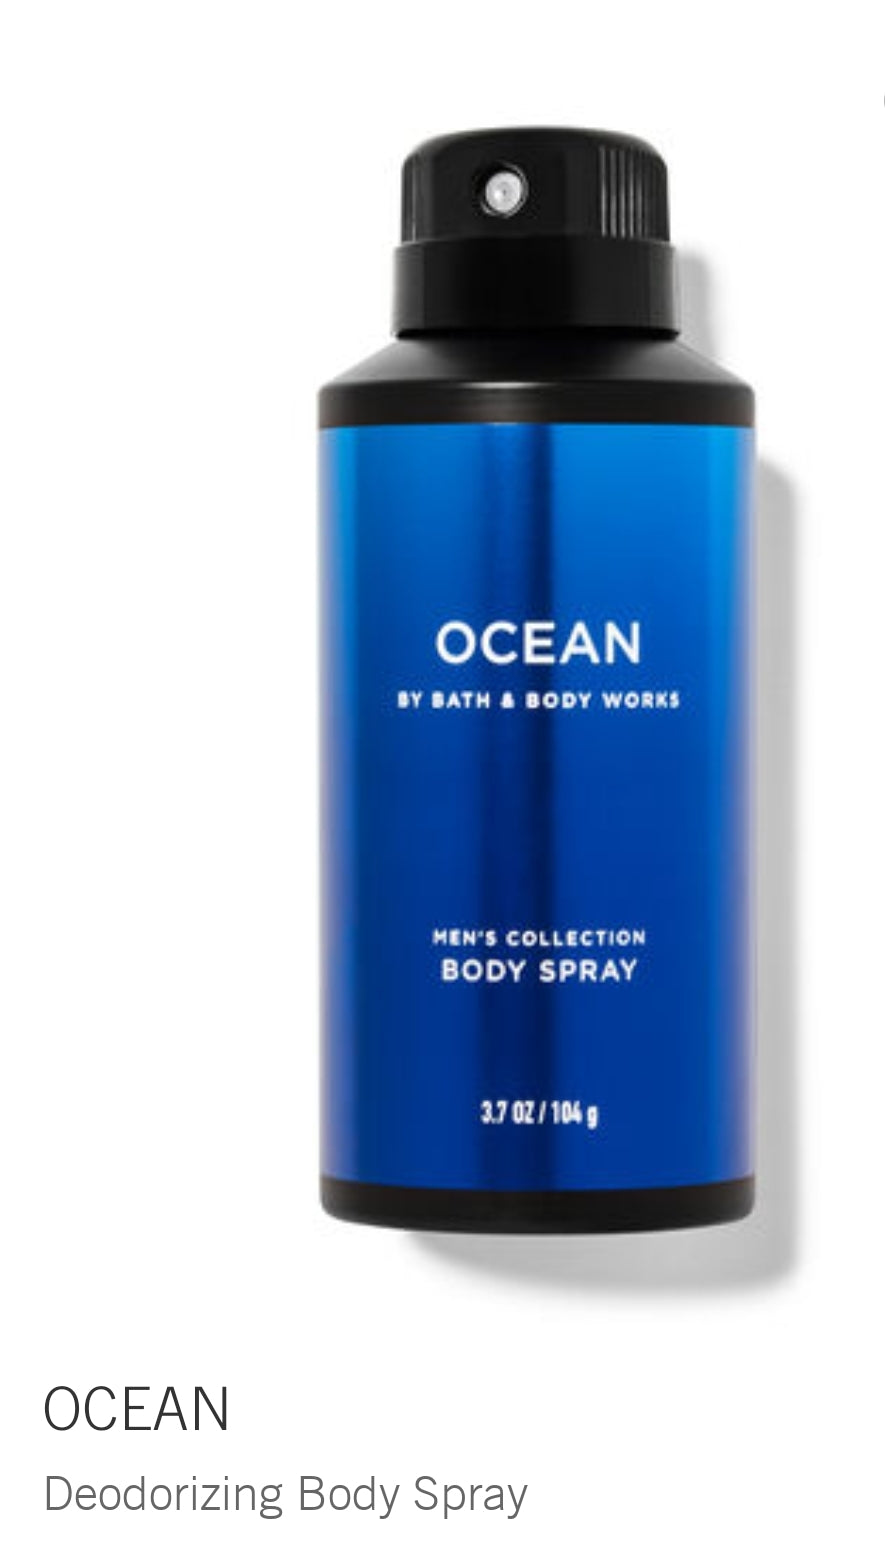 Ocean body spray